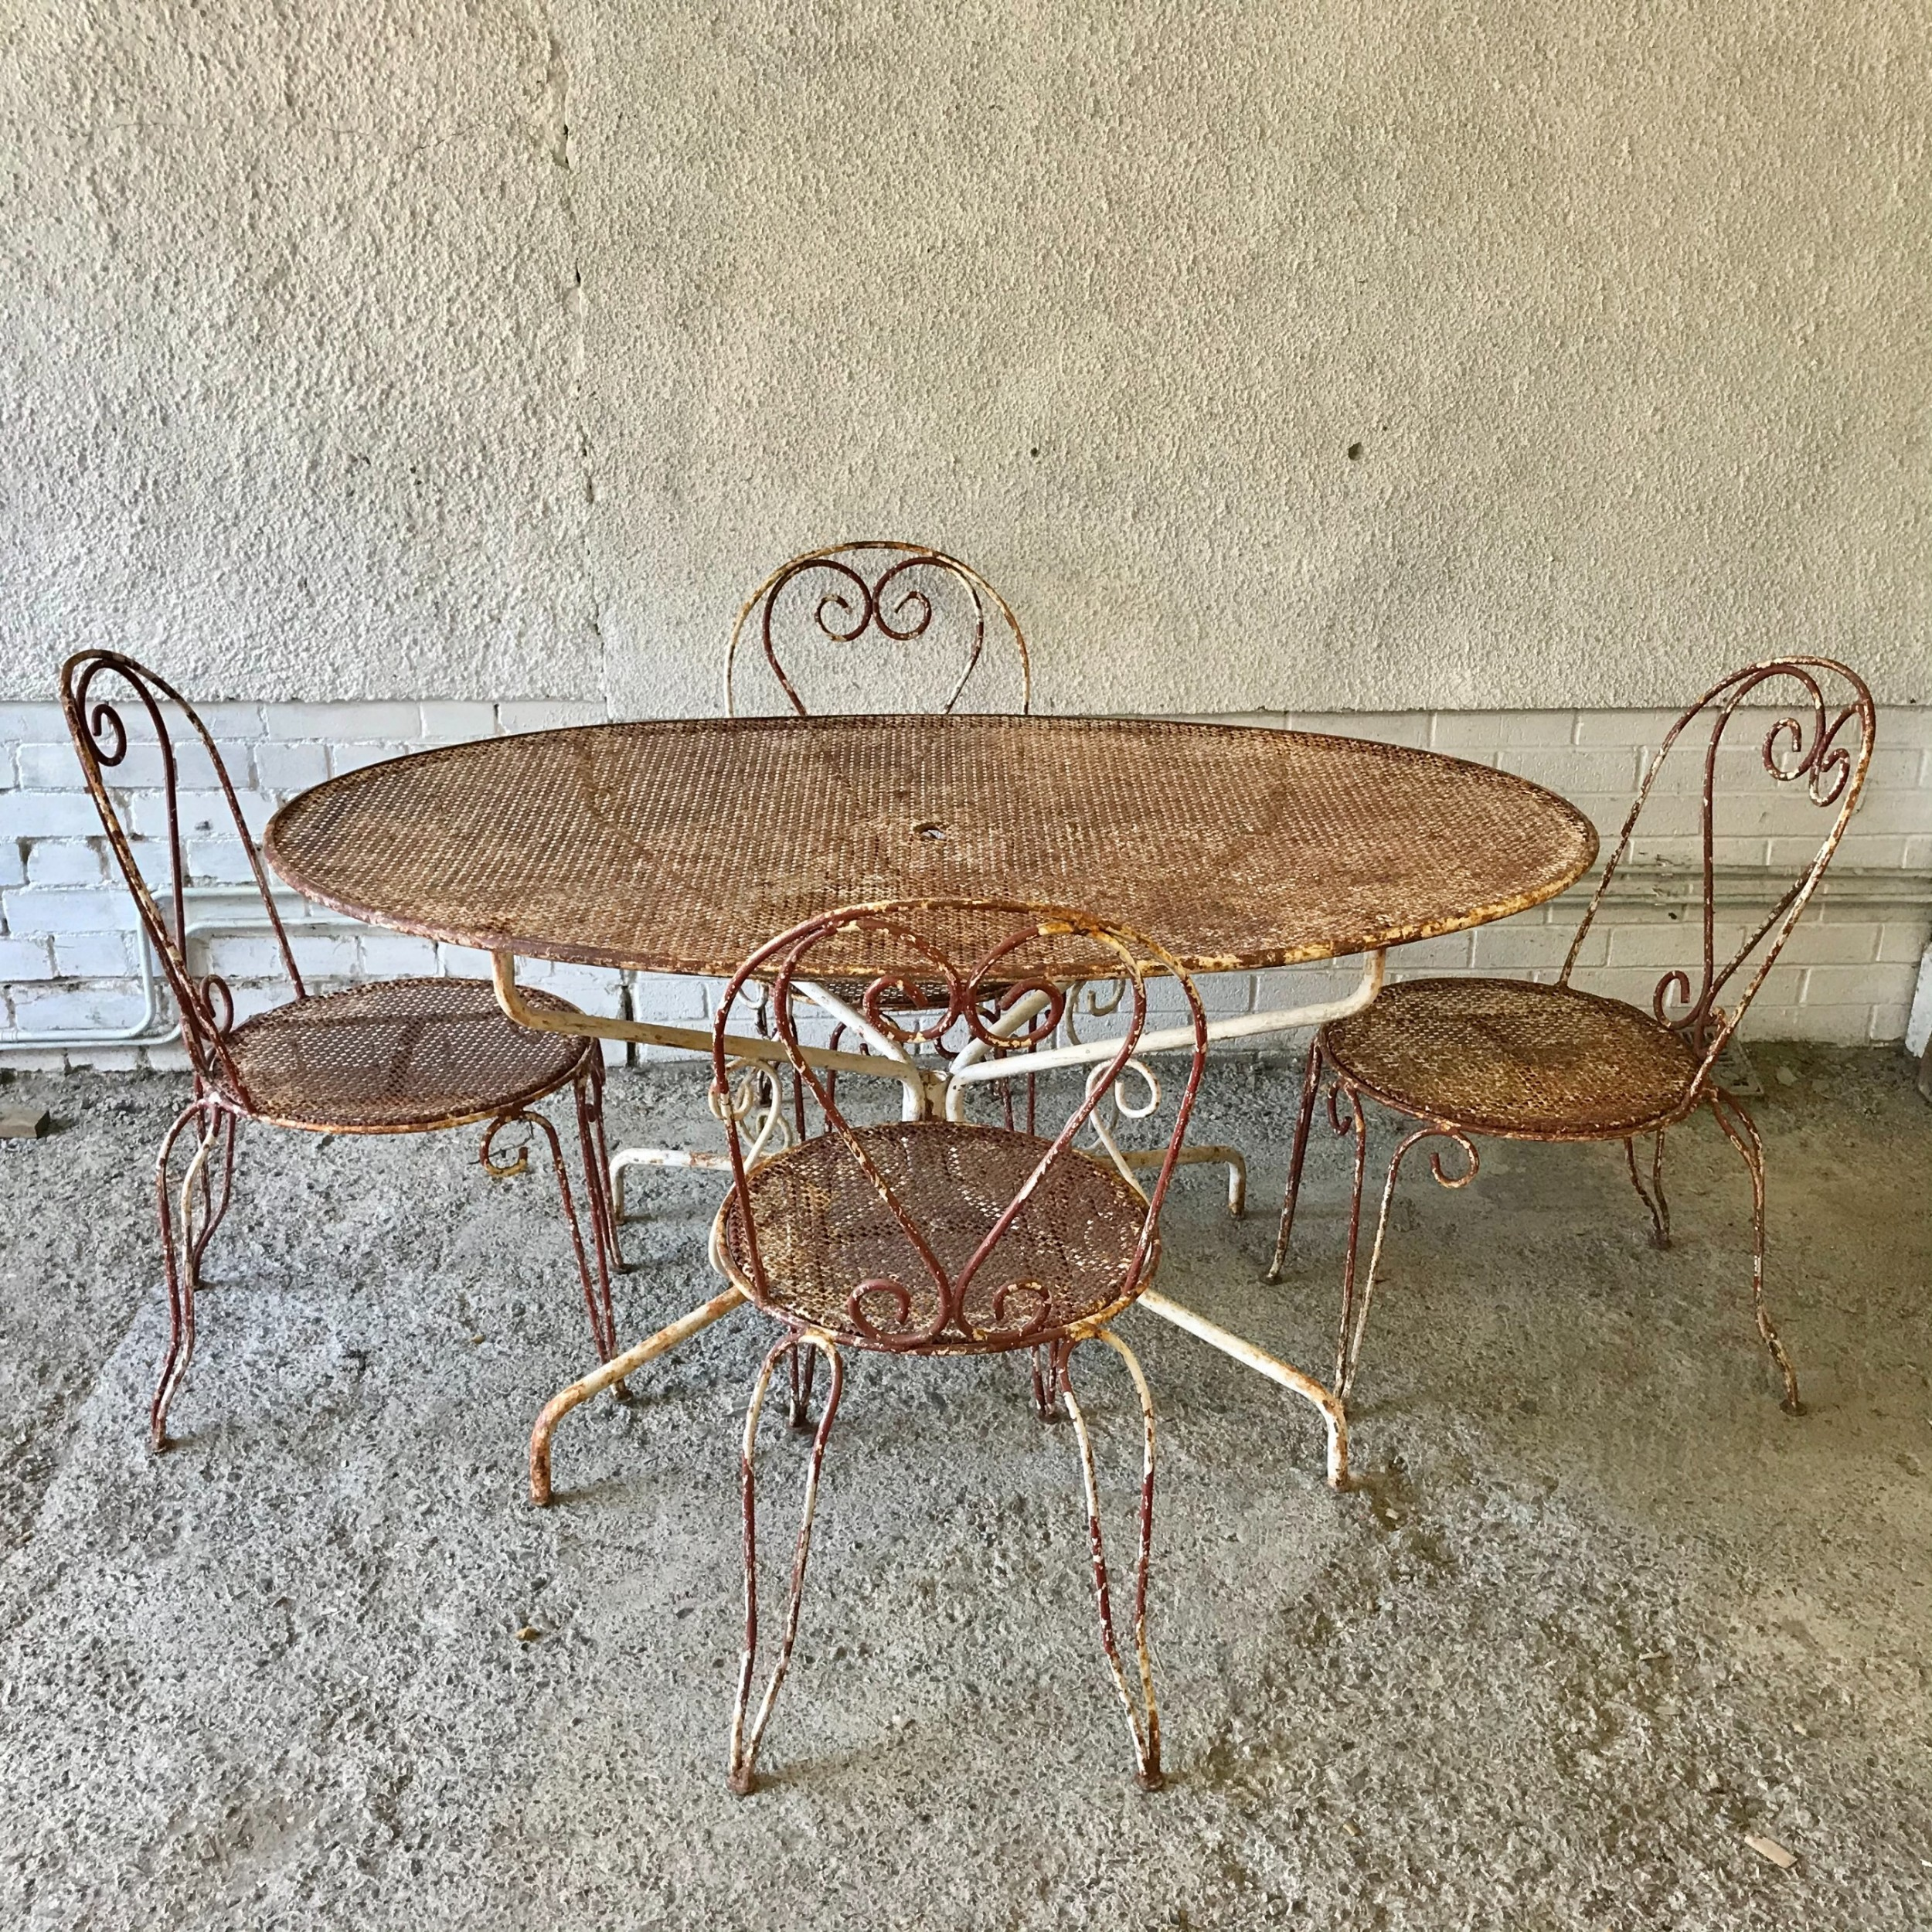 1920's 30's french cafe garden table with pierced metal top and 4 chairs with pierced seats